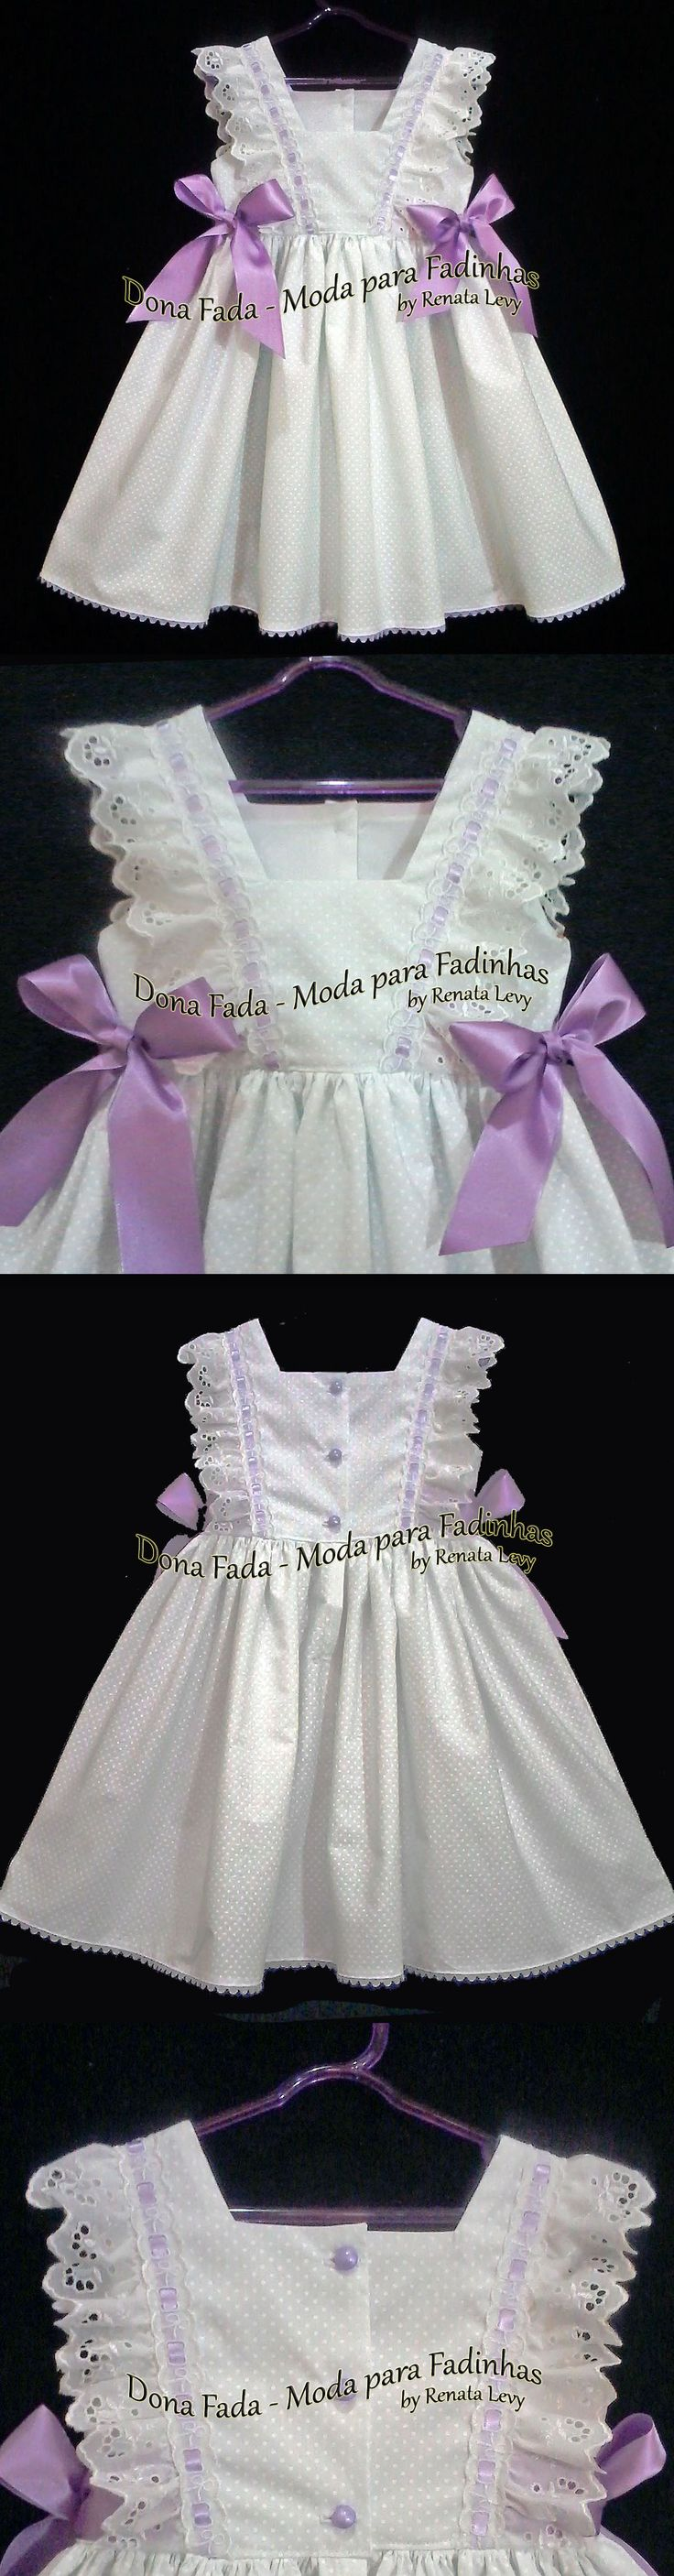 Vestido Branco e Lilás - 2/3 anos - - - - - baby - infant - toddler - kids - clothes for girls - - - https://www.facebook.com/dona.fada.moda.para.fadinhas/                                                                                                                                                                                 Mais